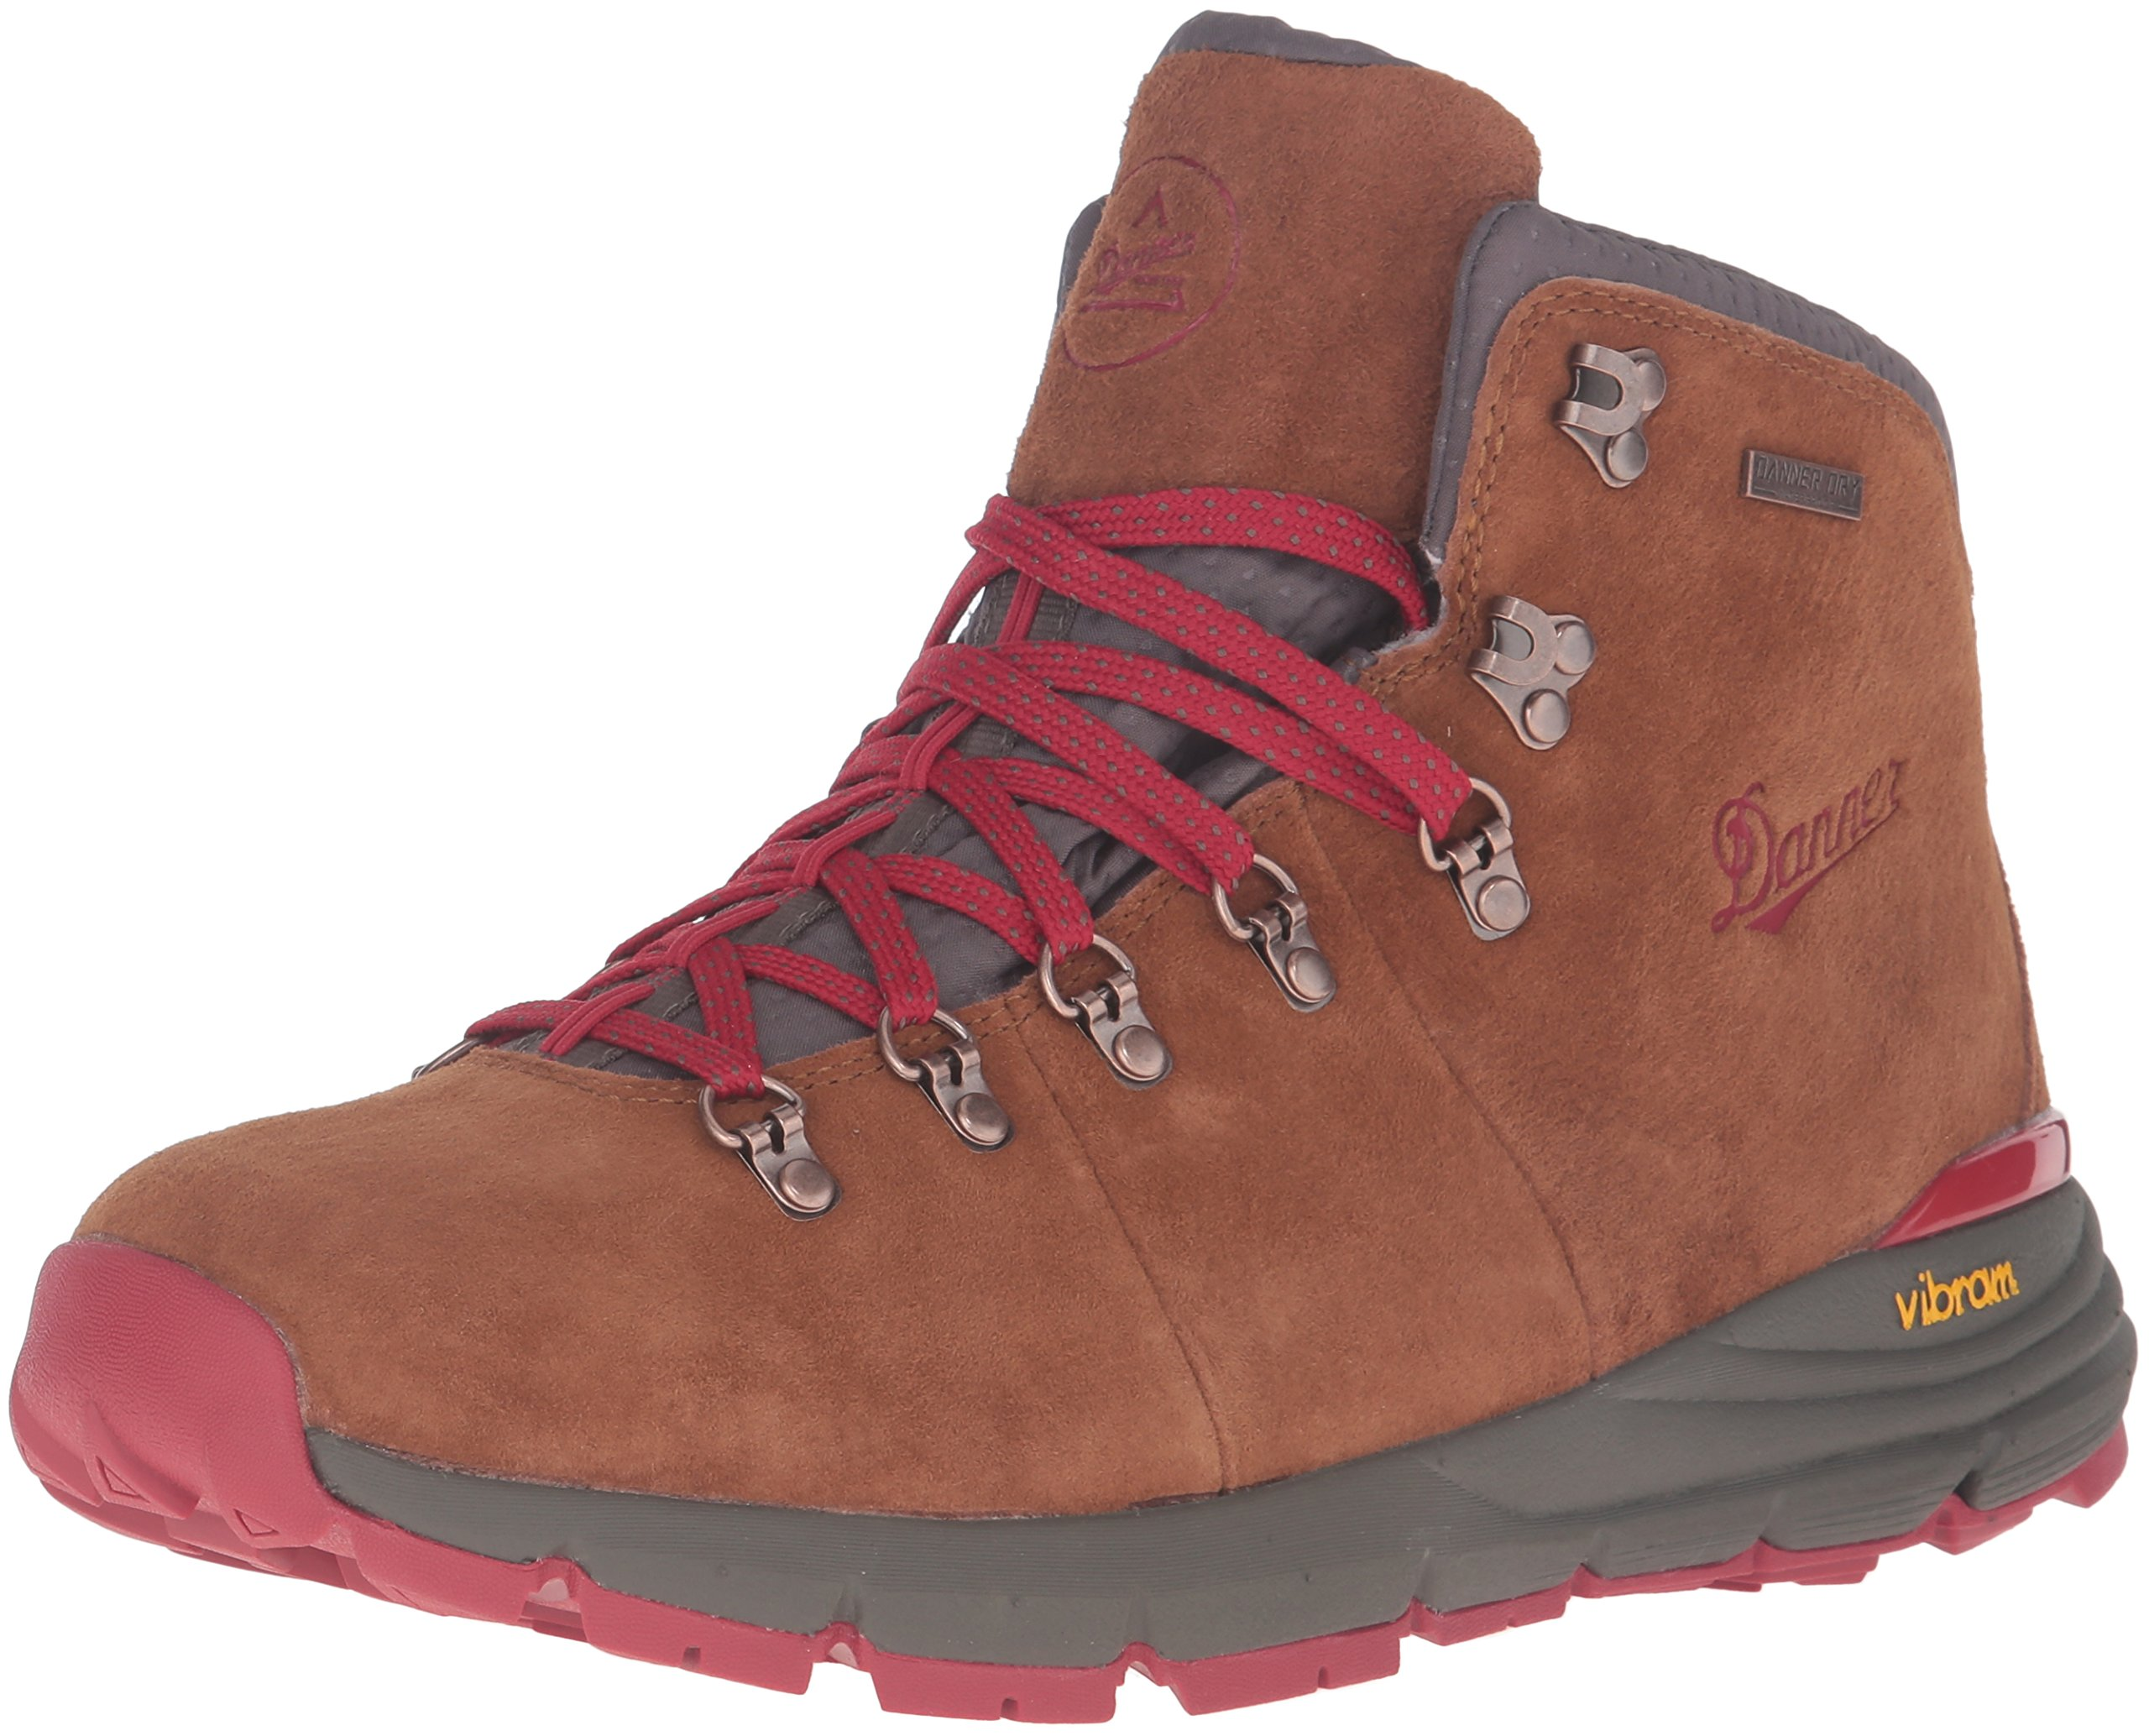 Danner Men's Mountain 600 4.5'' Hiking Boot, Brown/Red, 10.5 D US